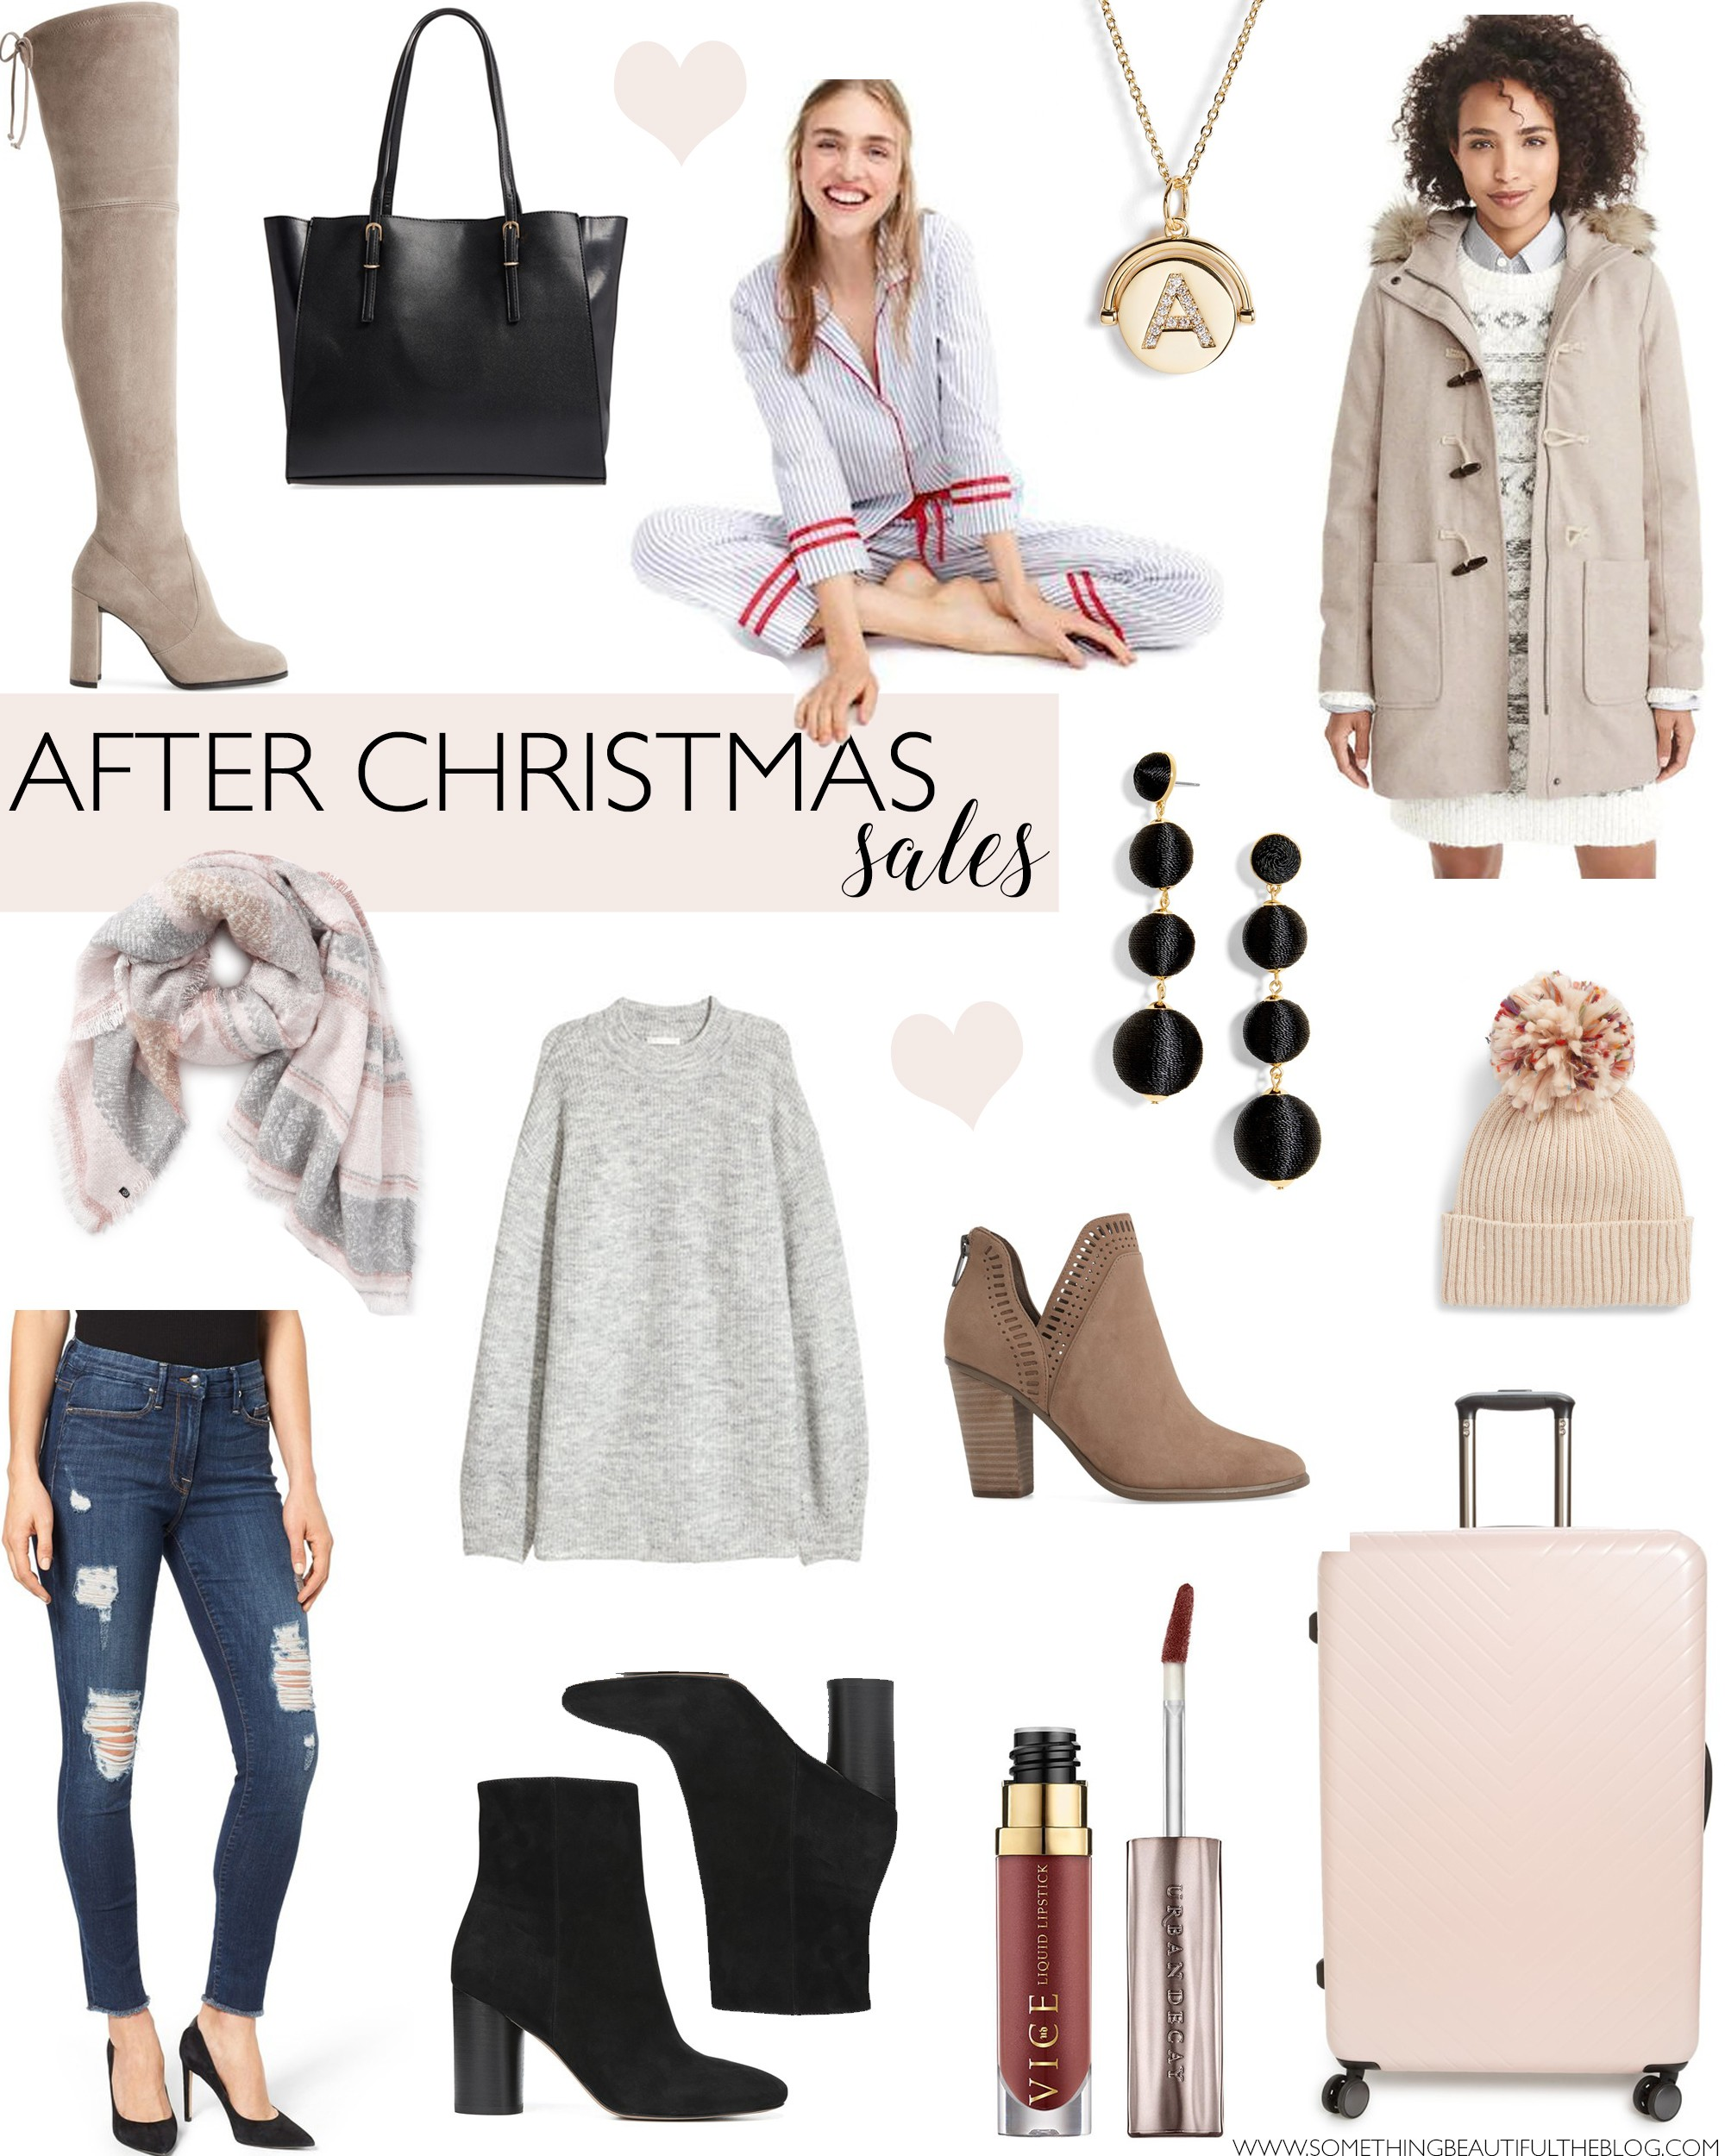 After Christmas Sales + Nordstrom Half-Yearly Sale | Something Beautiful